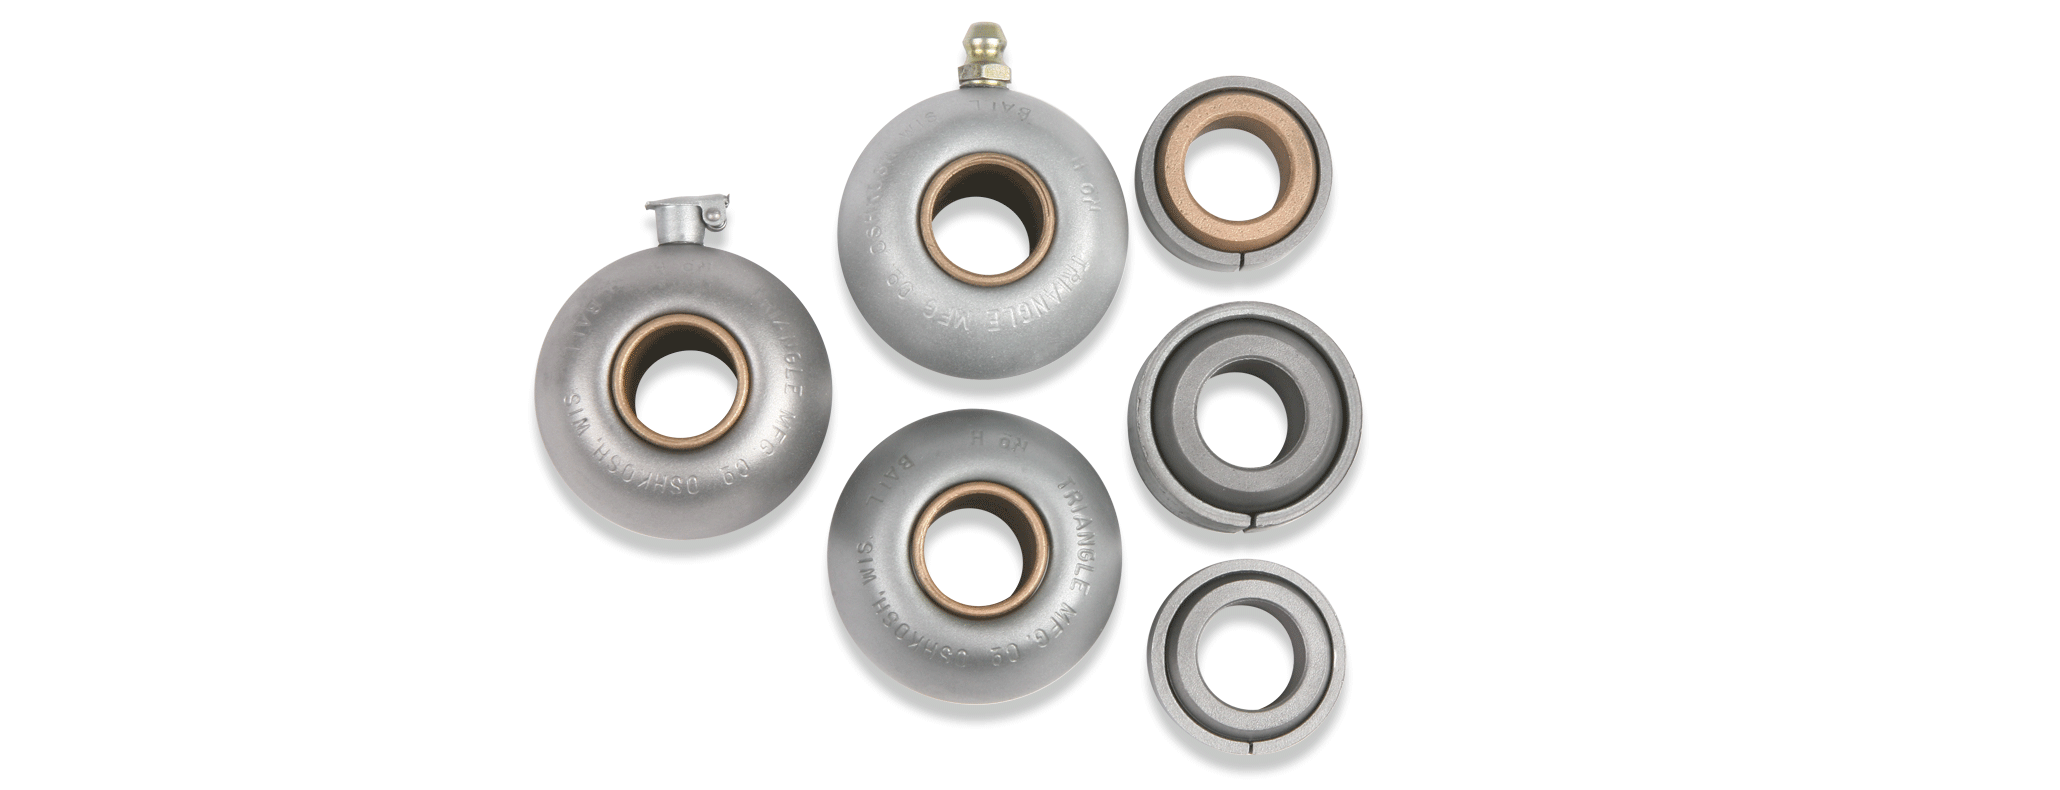 Spherical Plain Bearing FAQ - Commonly Asked Questions with Answers